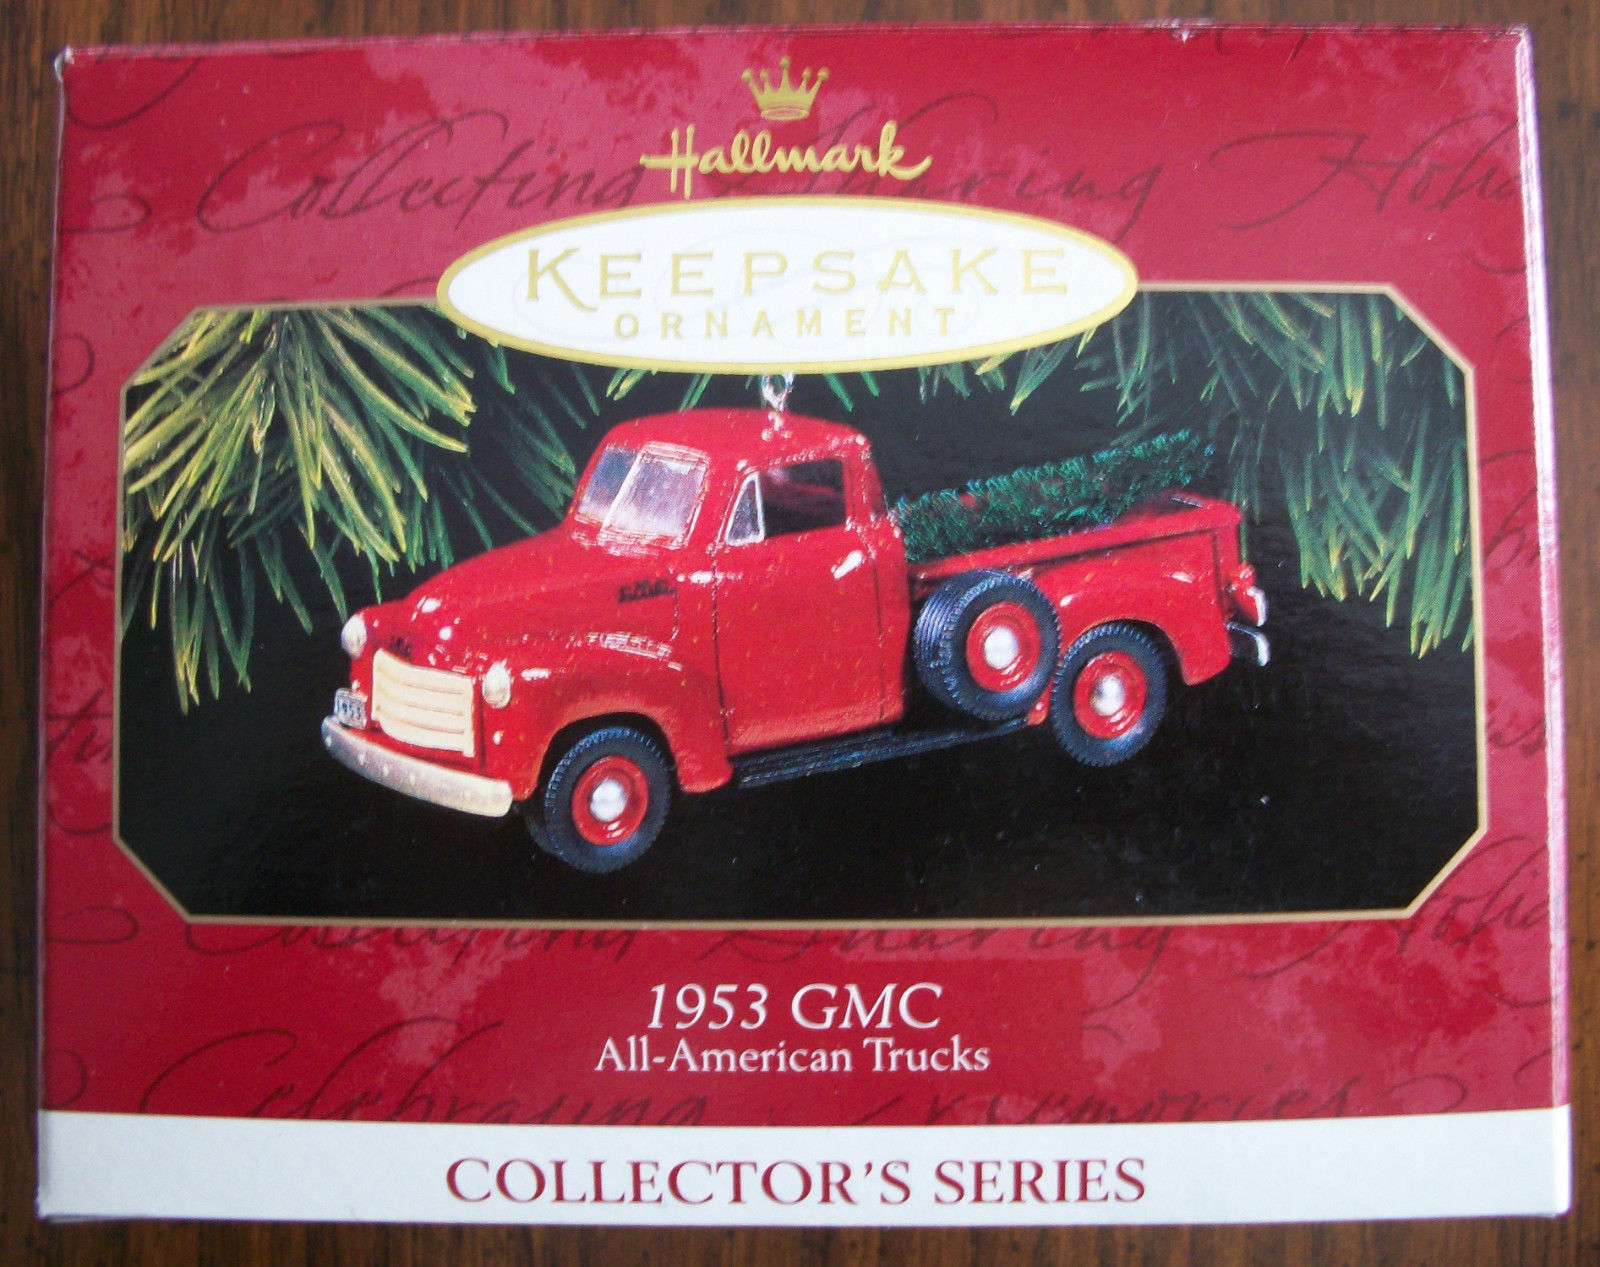 Primary image for Hallmark 1997 Keepsake Ornament 1953 GMC TRUCK All-American Trucks NIB